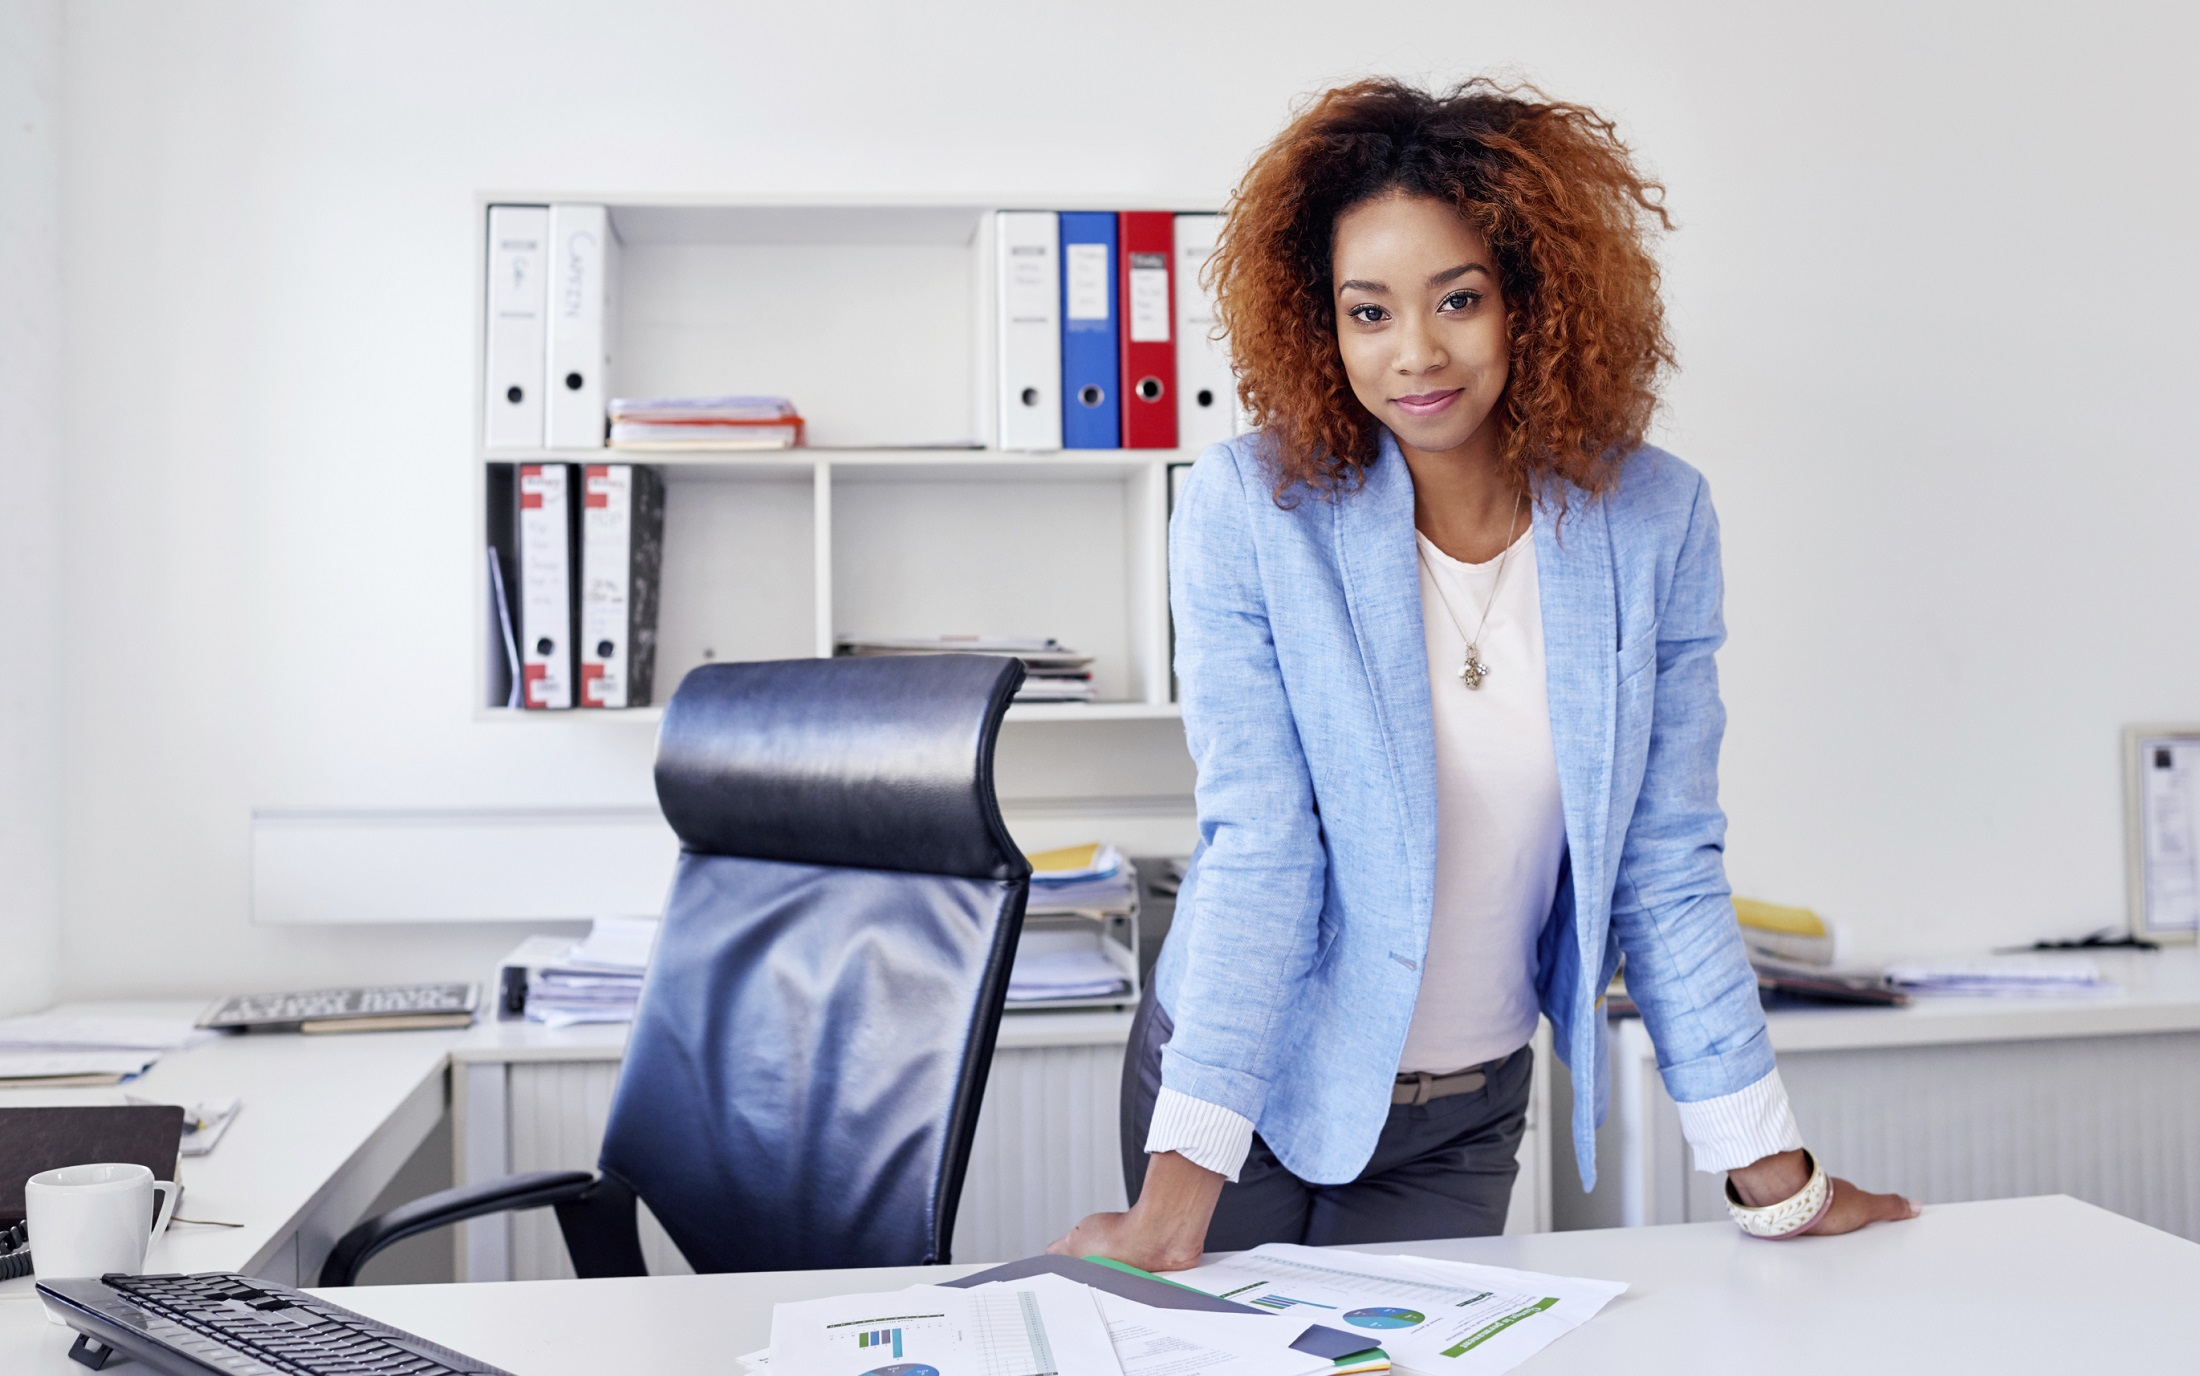 best career moves for women in their s the huffington post 10 best career moves for women in their 30s